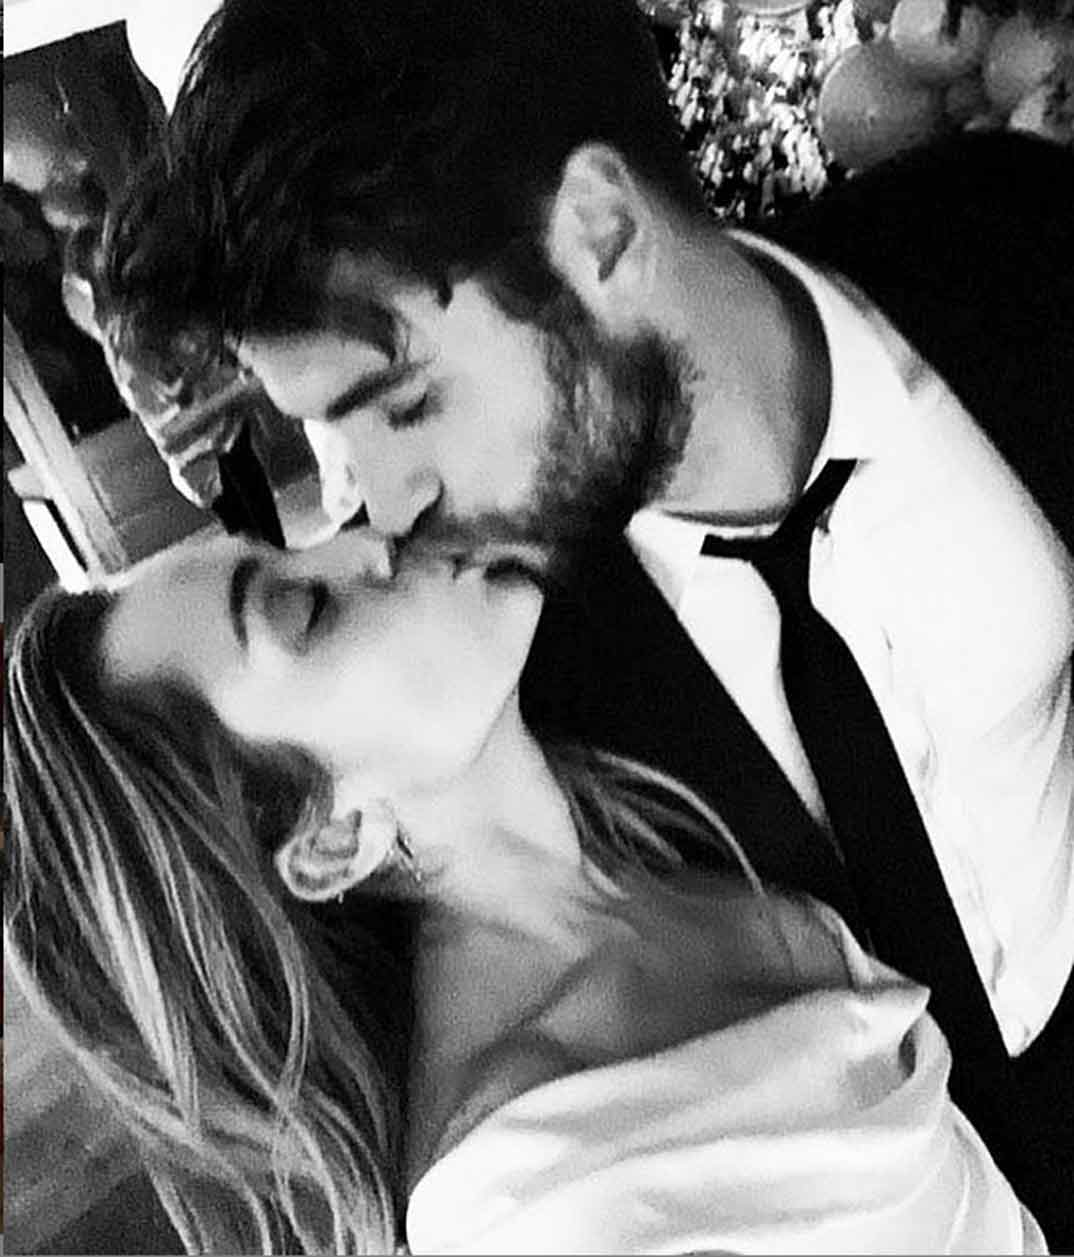 Boda Miley Cyrus y Liam Hemsworth (23/12/18)